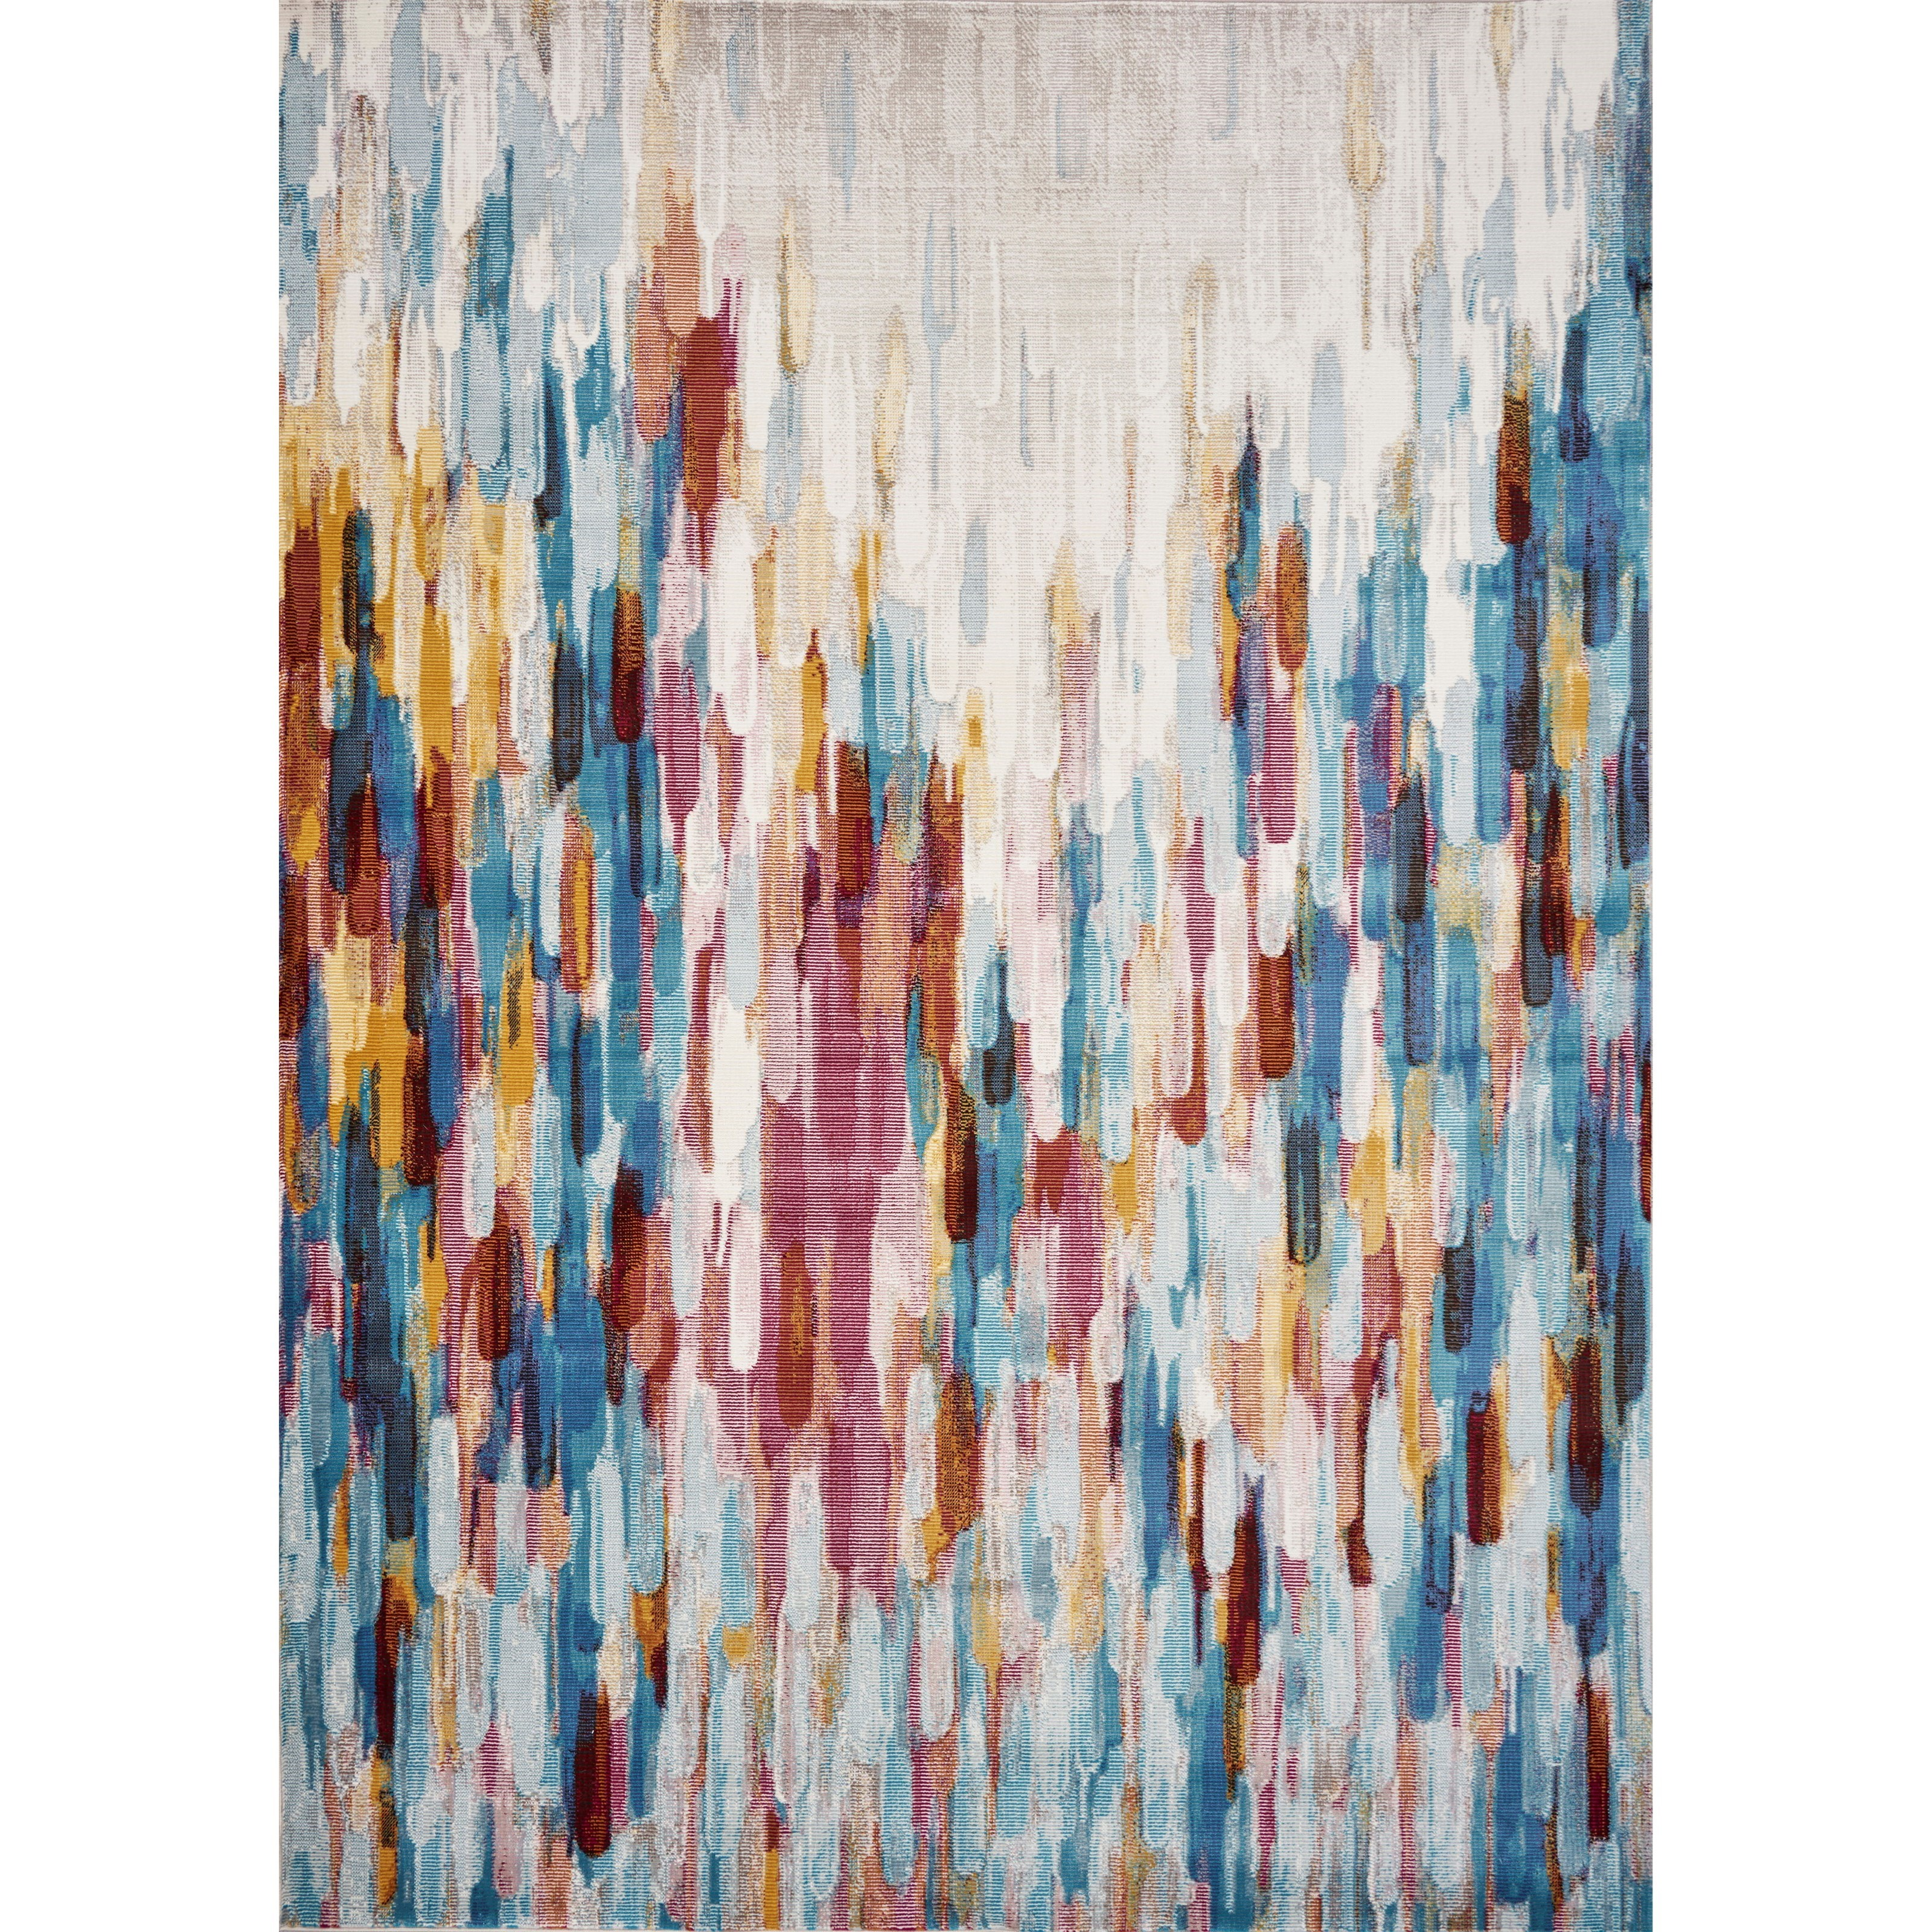 Arte 5' x 7' Multicolor Moderne Rug by Kas at Zak's Home